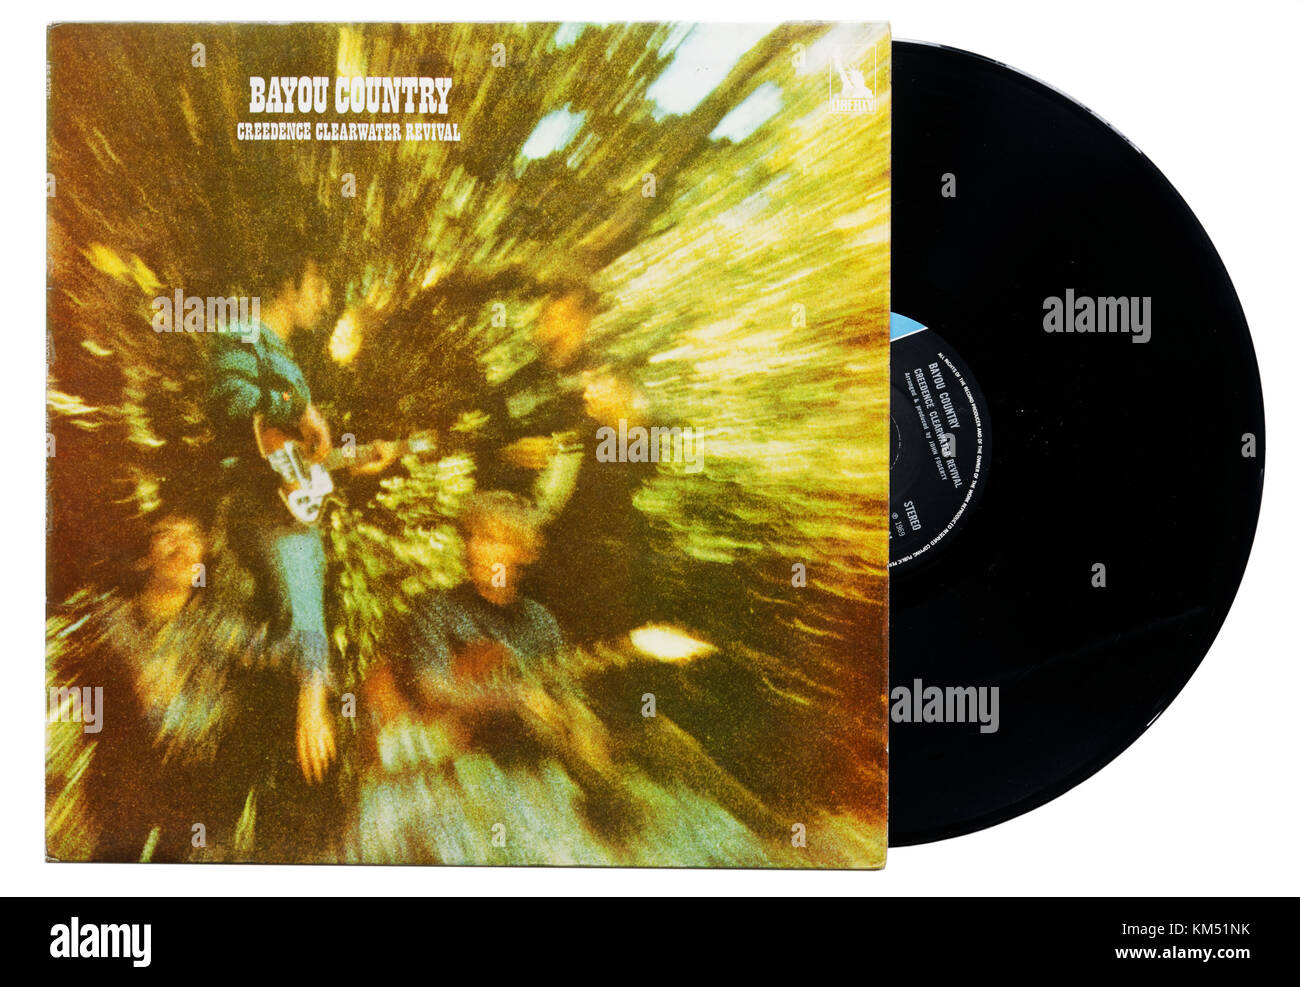 Creedence Clearwater Revival Bayou Country album Stockbild